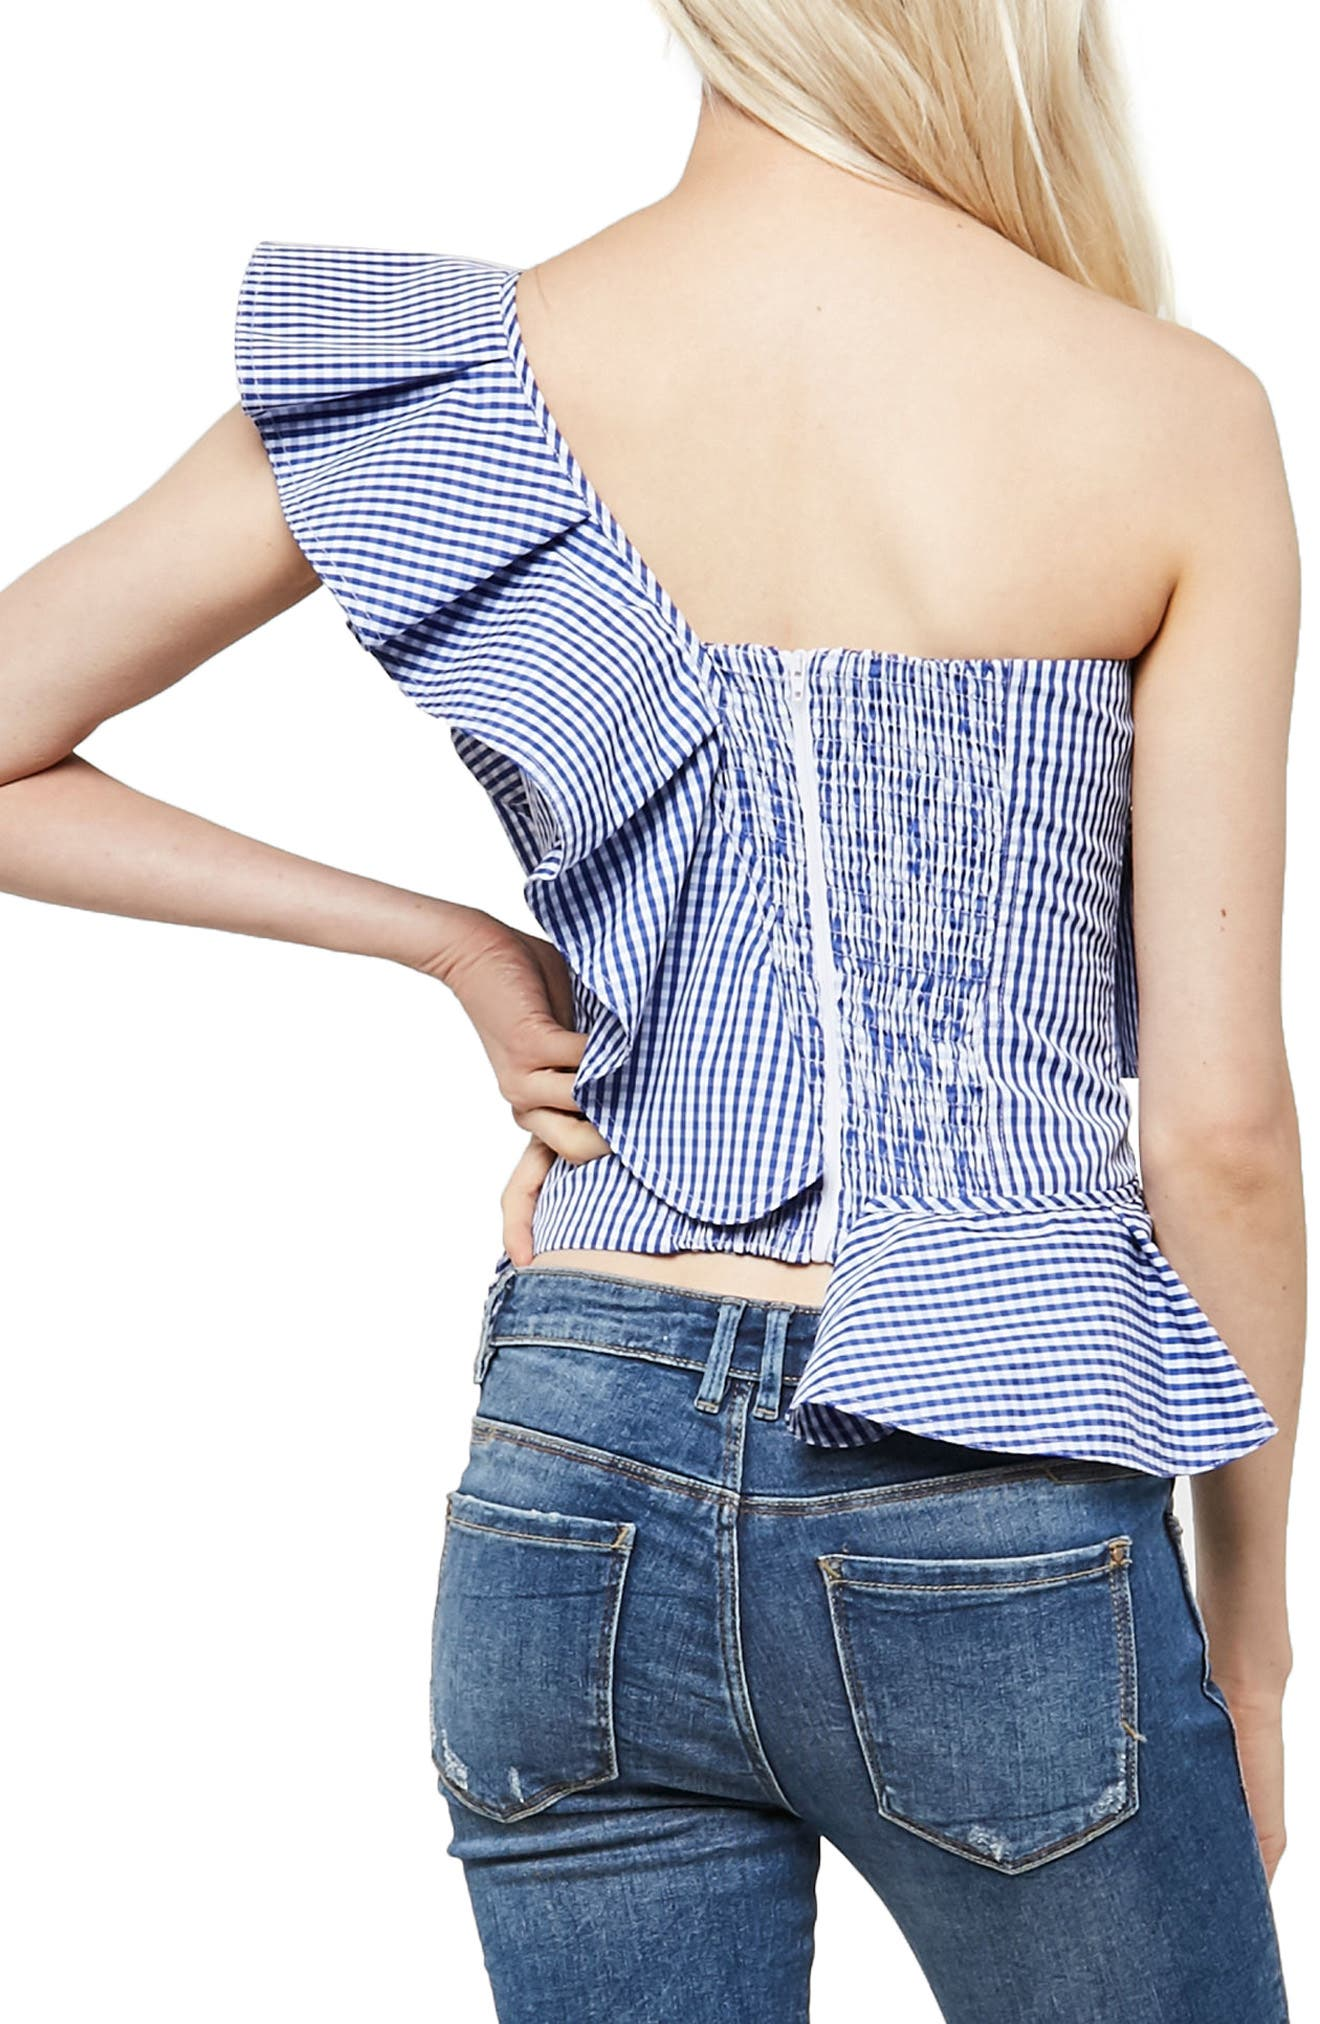 Alpha & Omega Gingham One-Shoulder Blouse,                             Alternate thumbnail 2, color,                             Royal